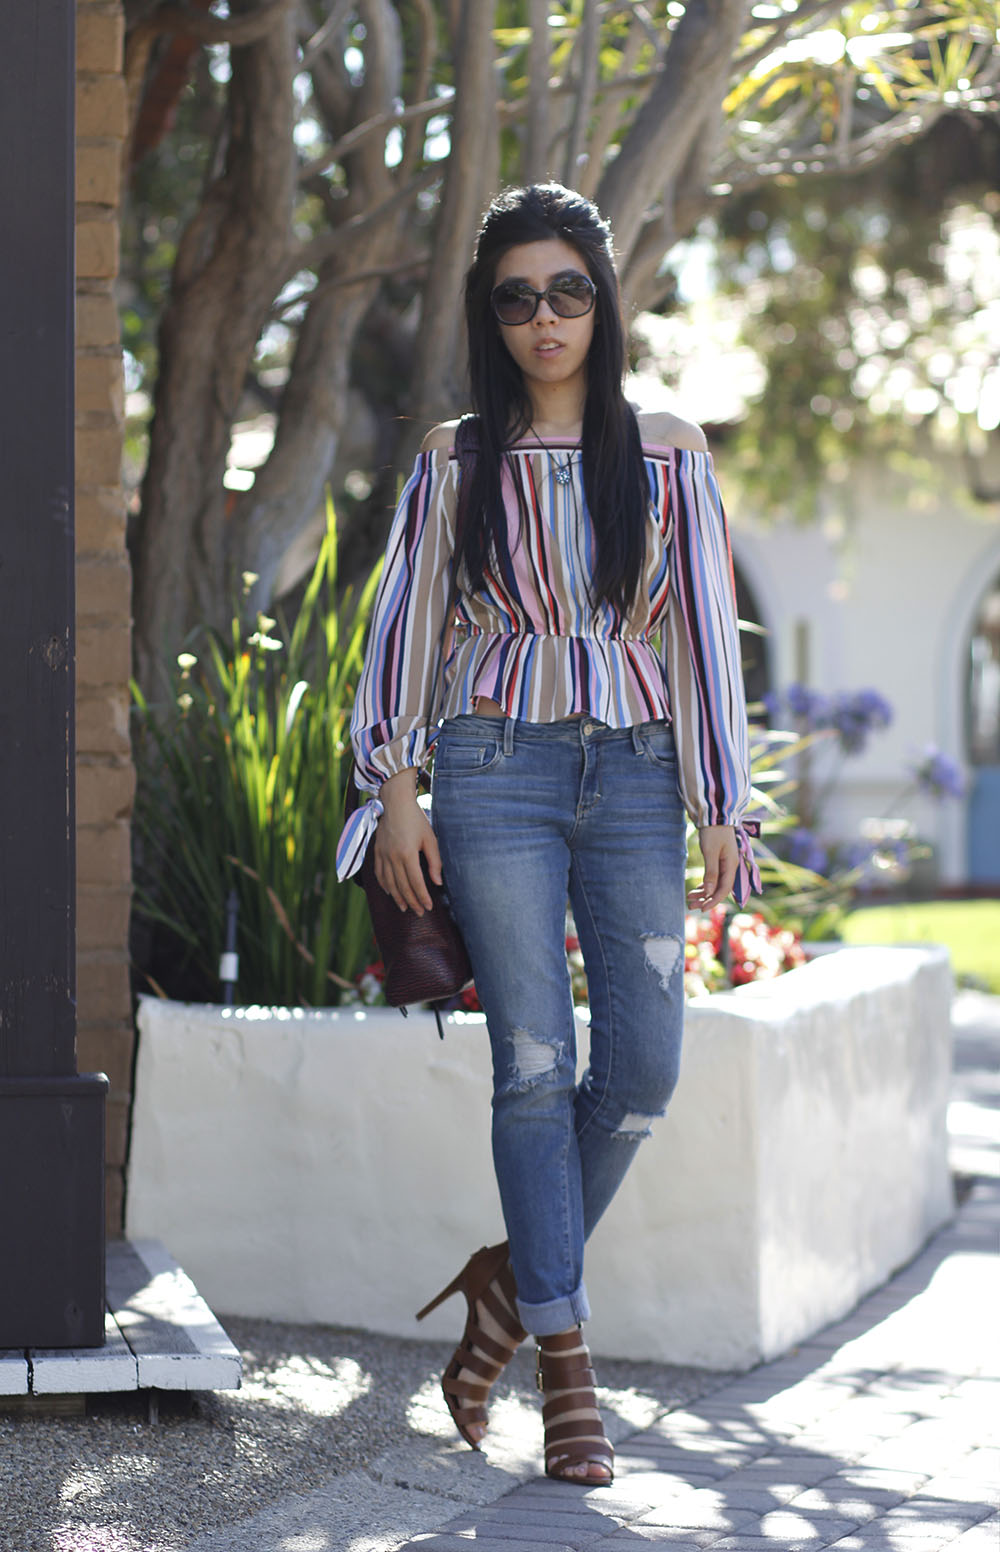 Adrienne Nguyen_Invictus_San Diego_How to wear Heels with Jeans